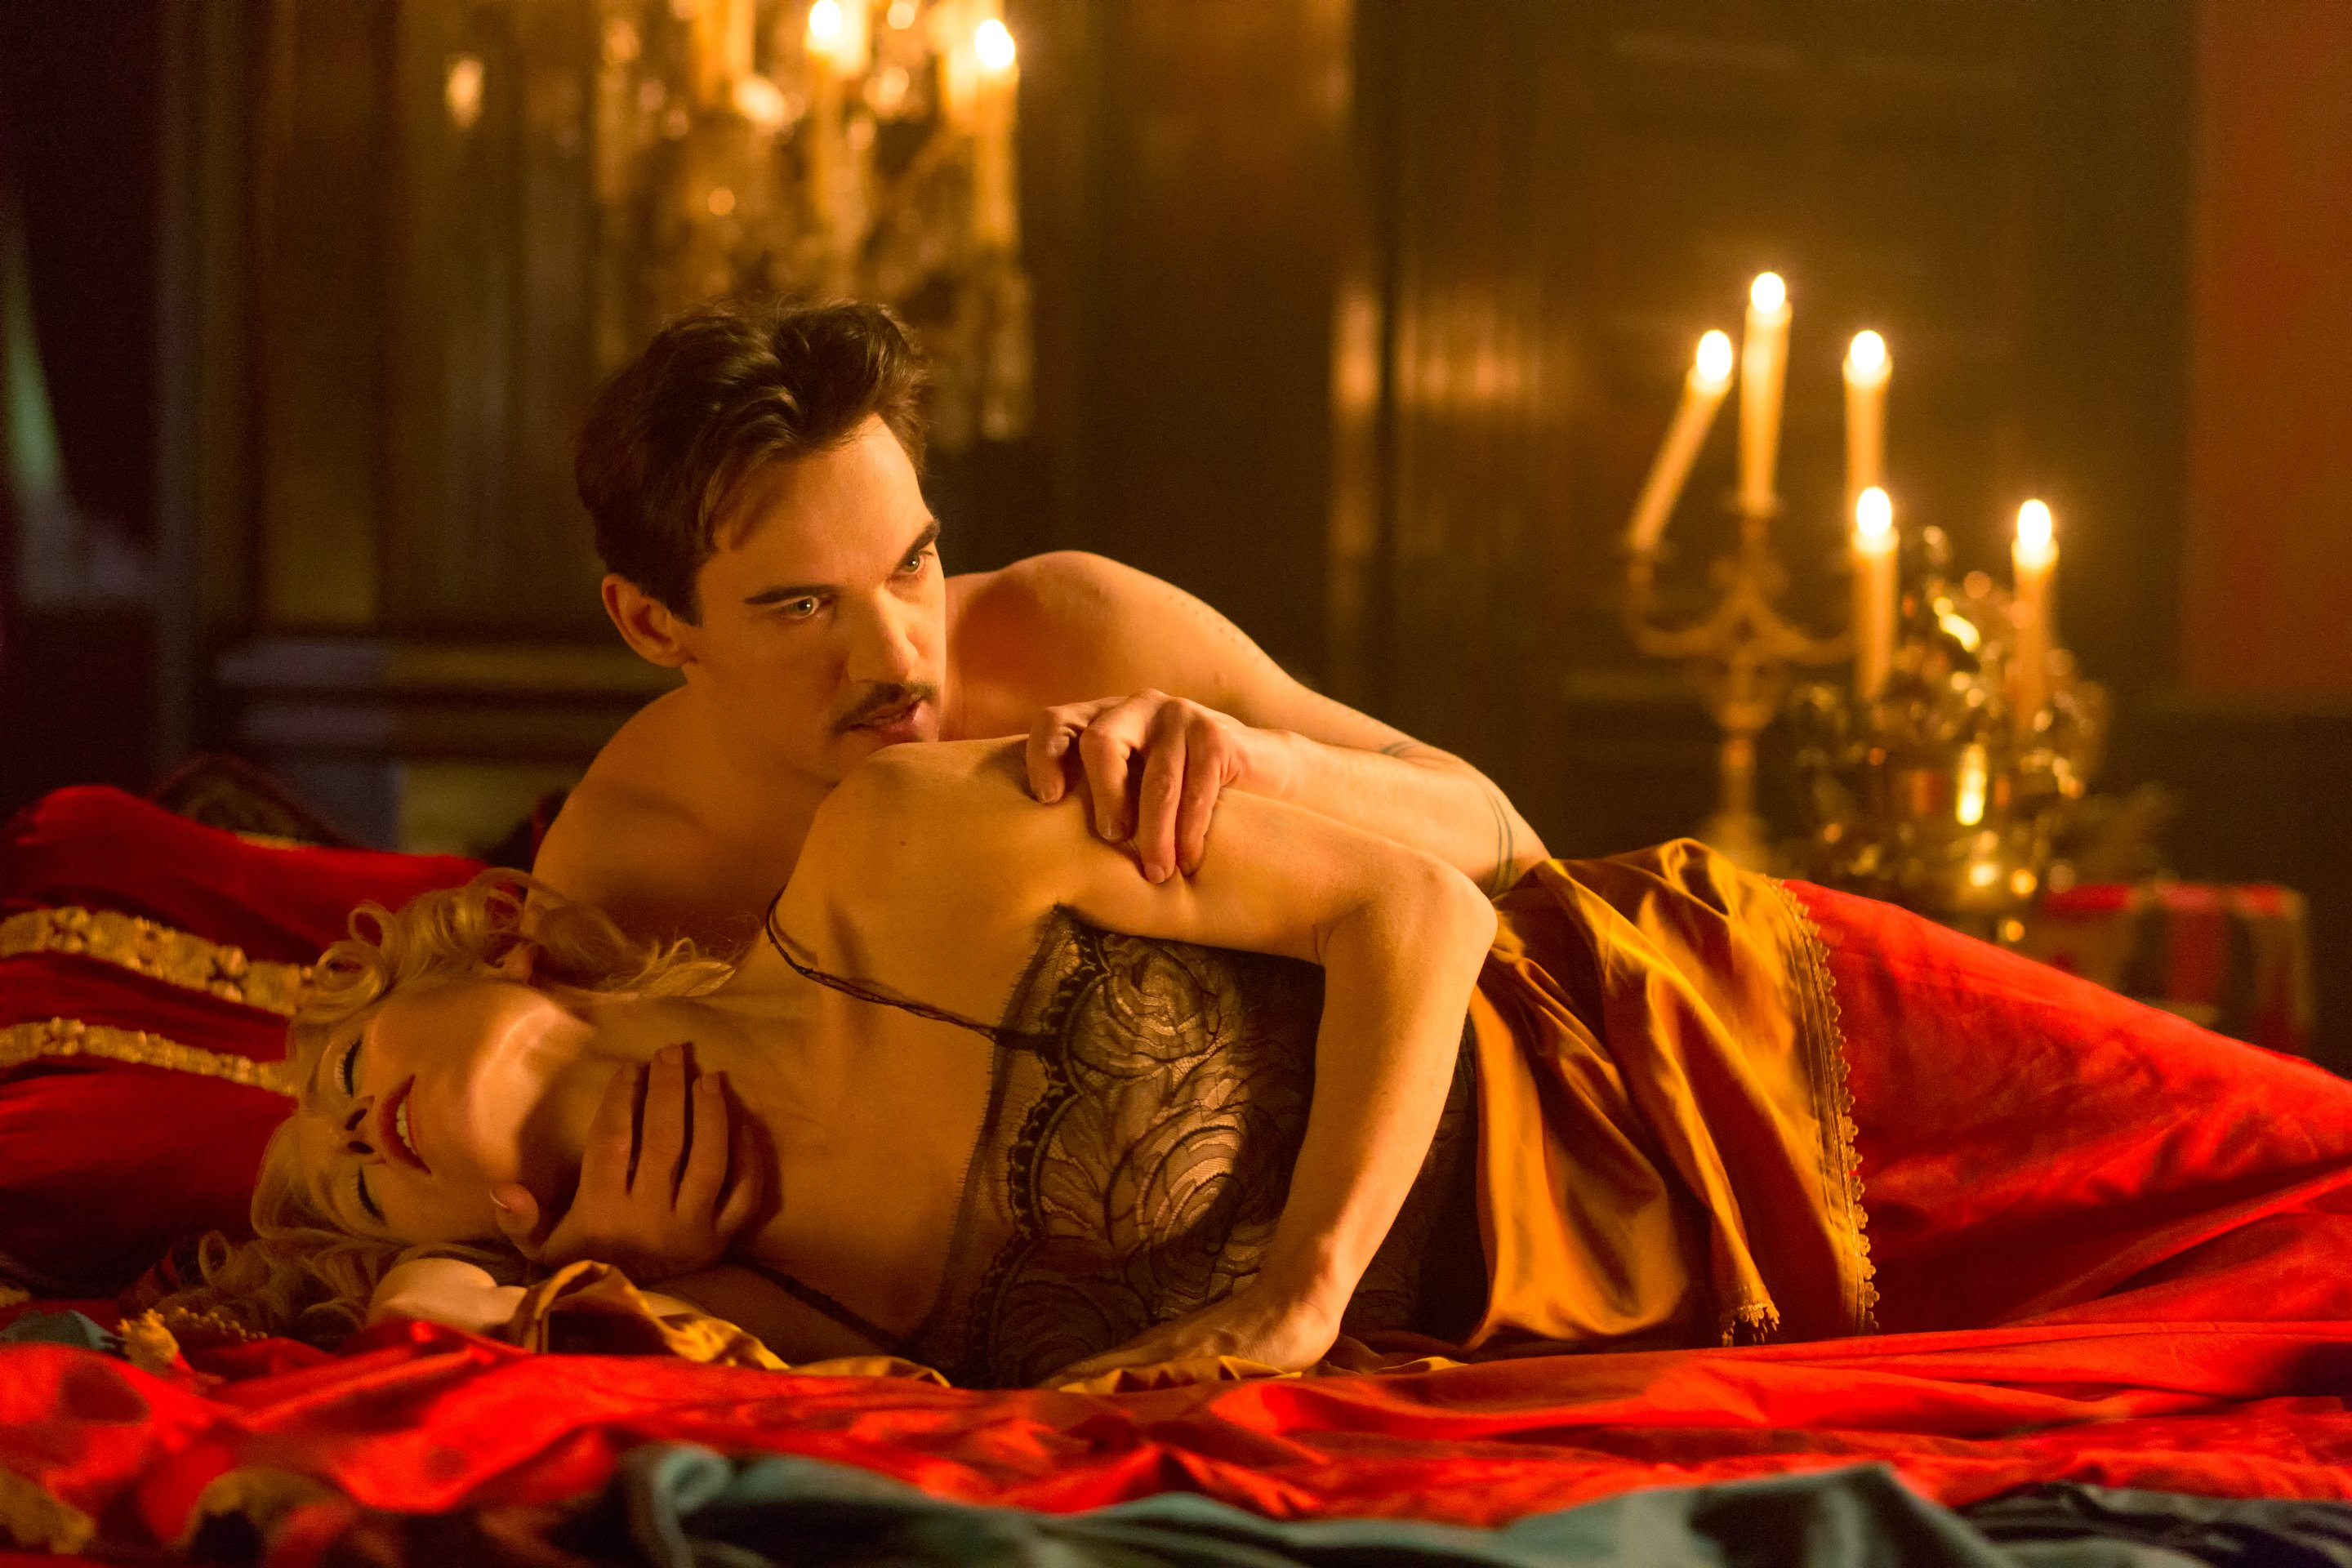 Dracula sex pic sexual scenes